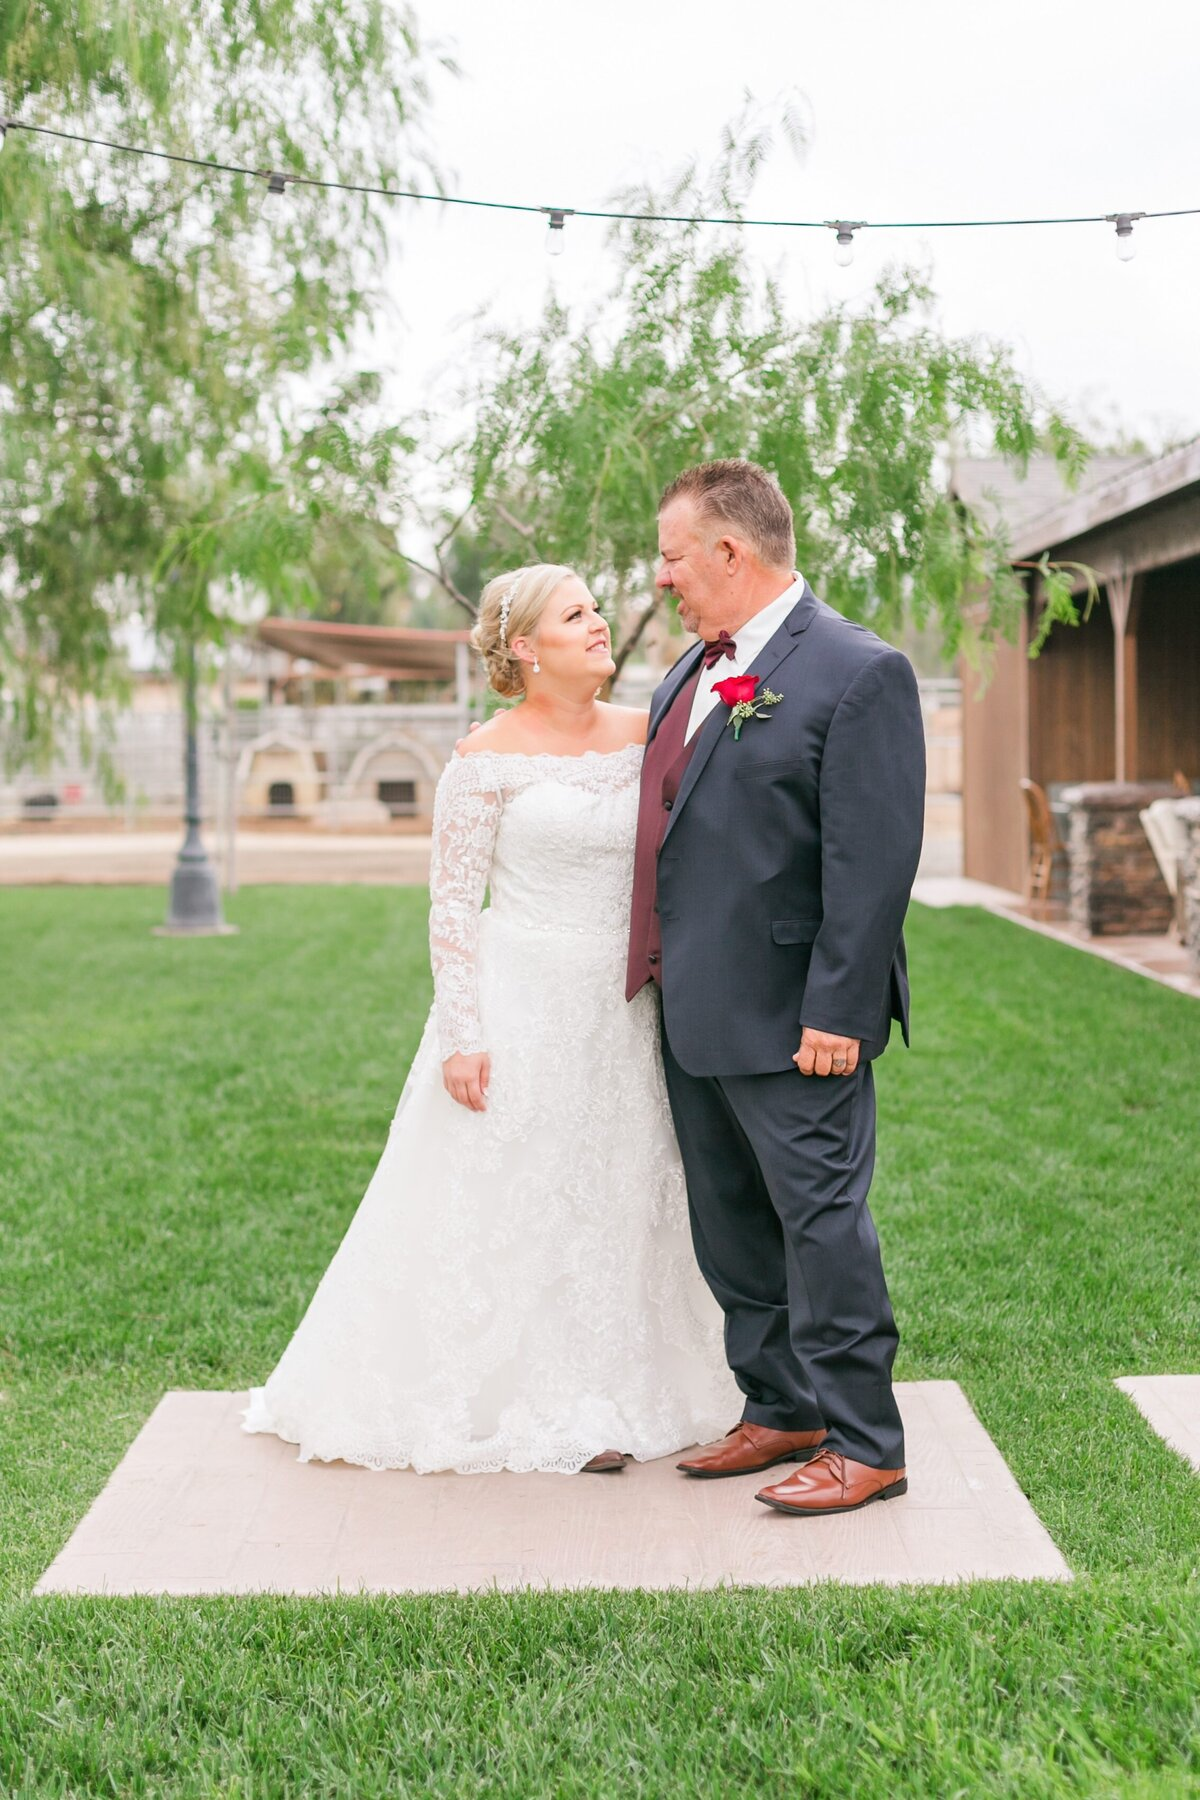 Kelli-Bee-Photography-Gallery-Farm-Southern-CA-Norco-Rustic-Wedding-Luxury-Lifestyle-Photographer-Lauren-Ben-0019